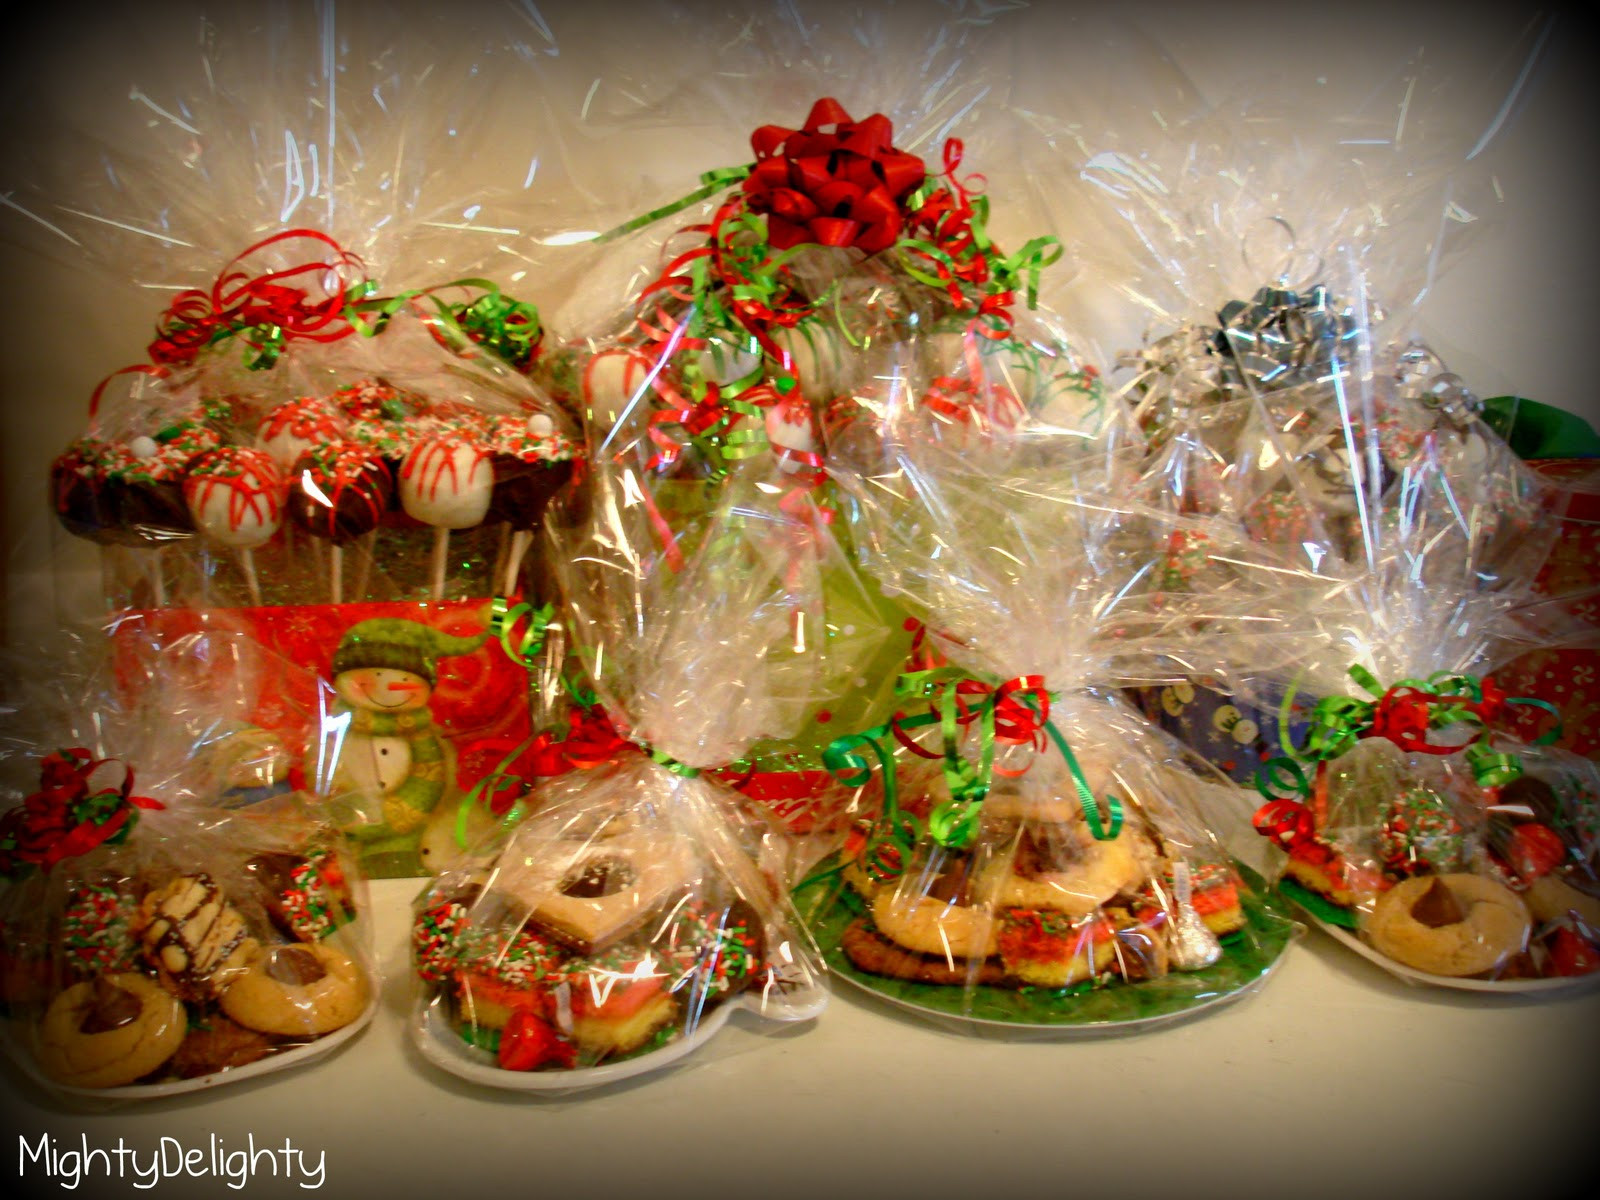 Holiday Cookies Gift Ideas  Mighty Delighty December 2011